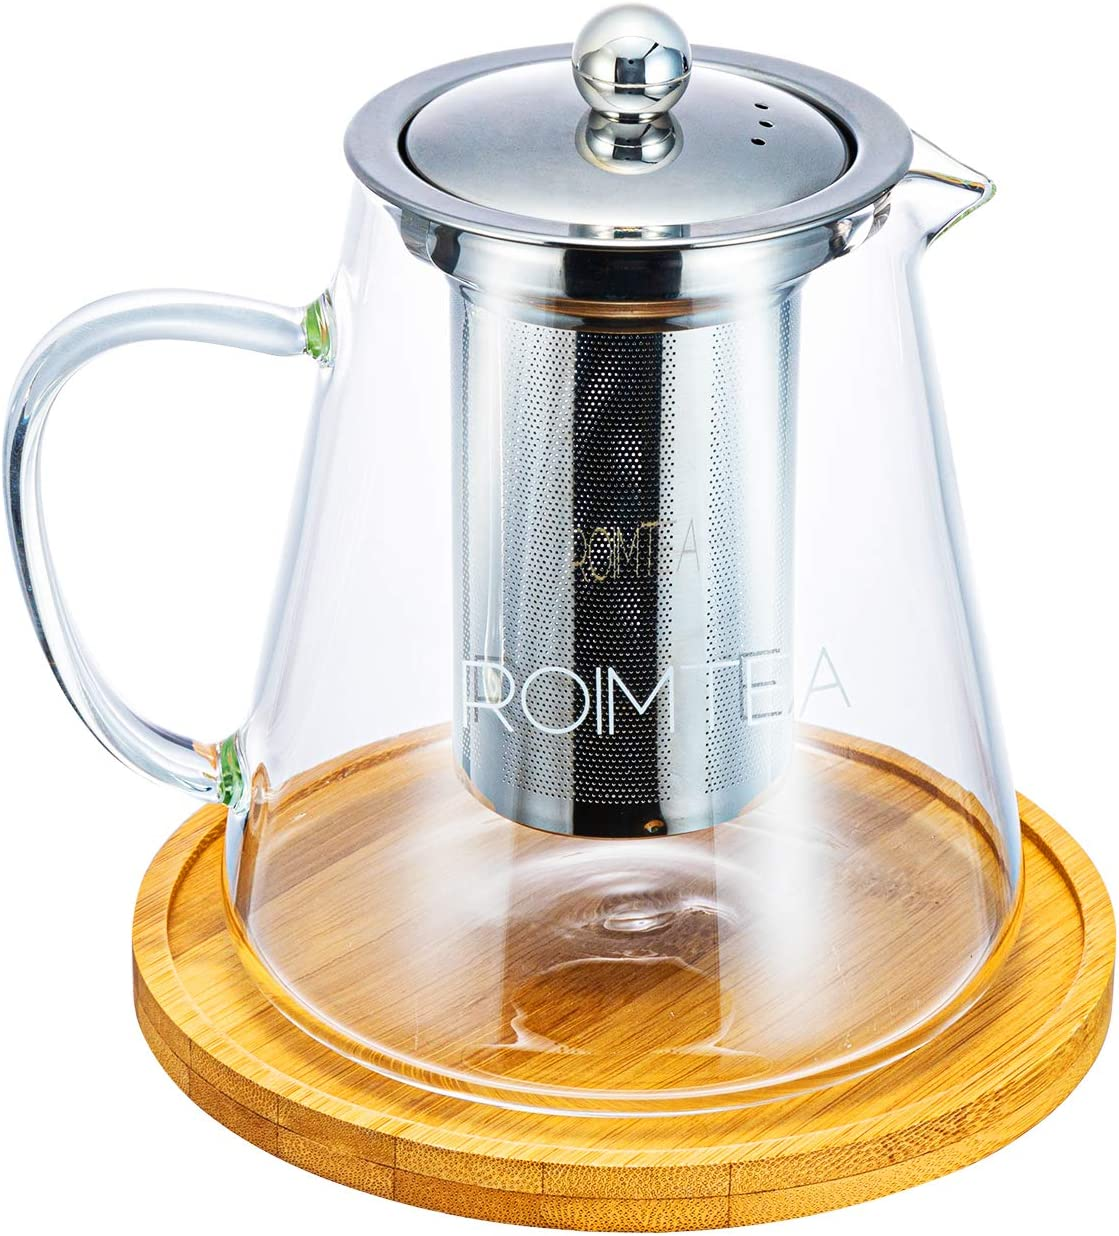 Glass Teapot with Stainless Steel Removable Infuser for Loose Leaf Tea, Bonus Tea Kettle & Infuser Coaster, Microwave & Stovetop Safe, Gift Box, 950ml/32oz